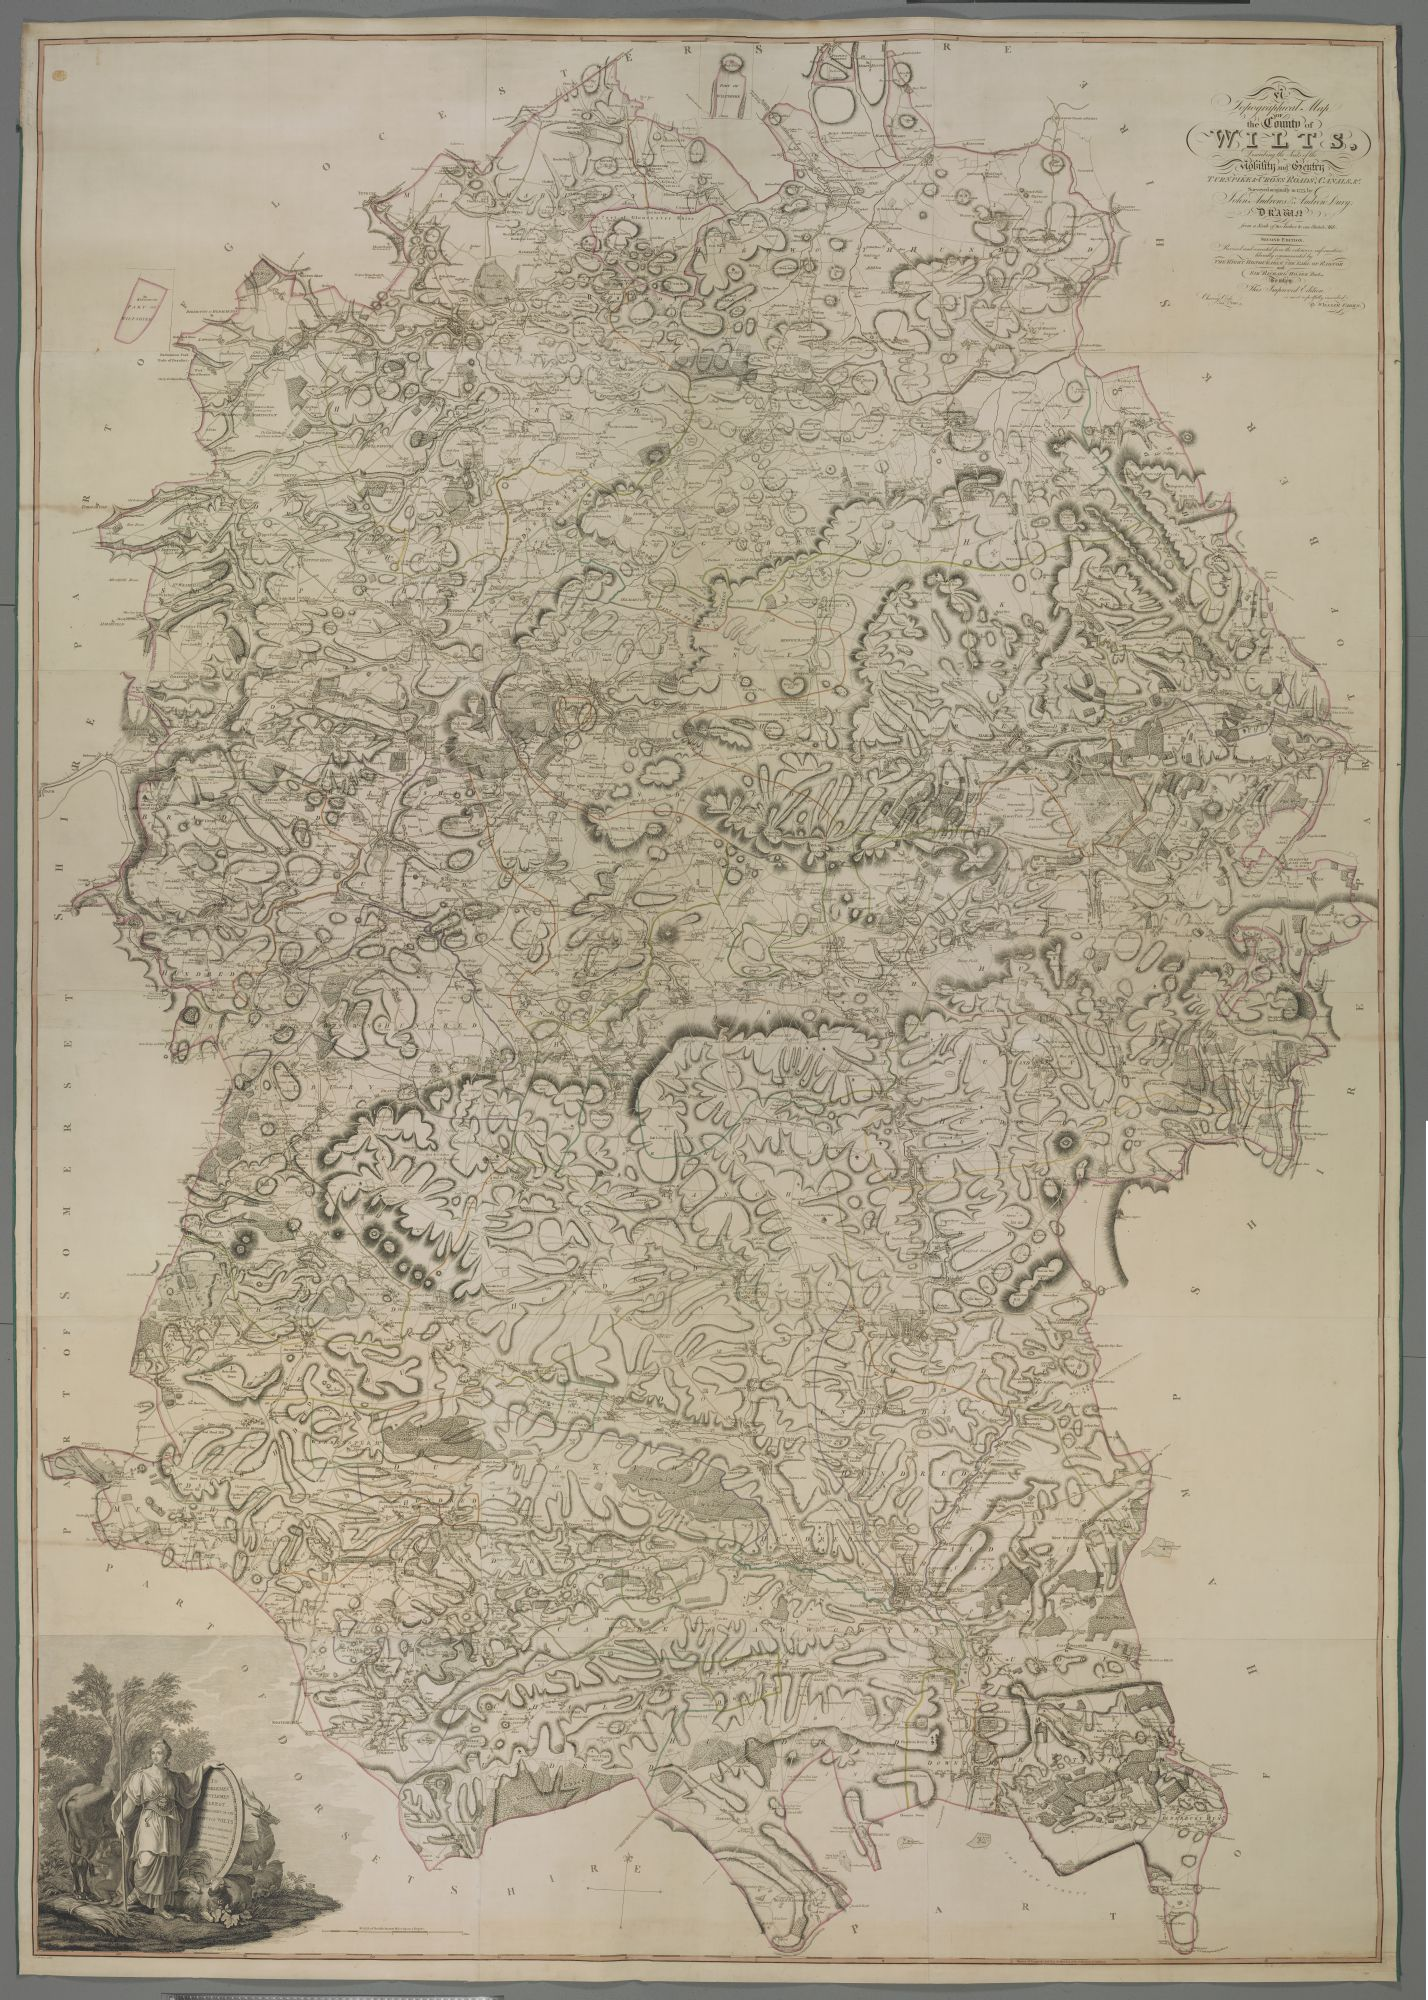 A Topographical Map OF the county of Wilts Describing the Seats of the Nobility and Gentry Turnpike & Cross Roads, Canals, &c., by John Andrews.